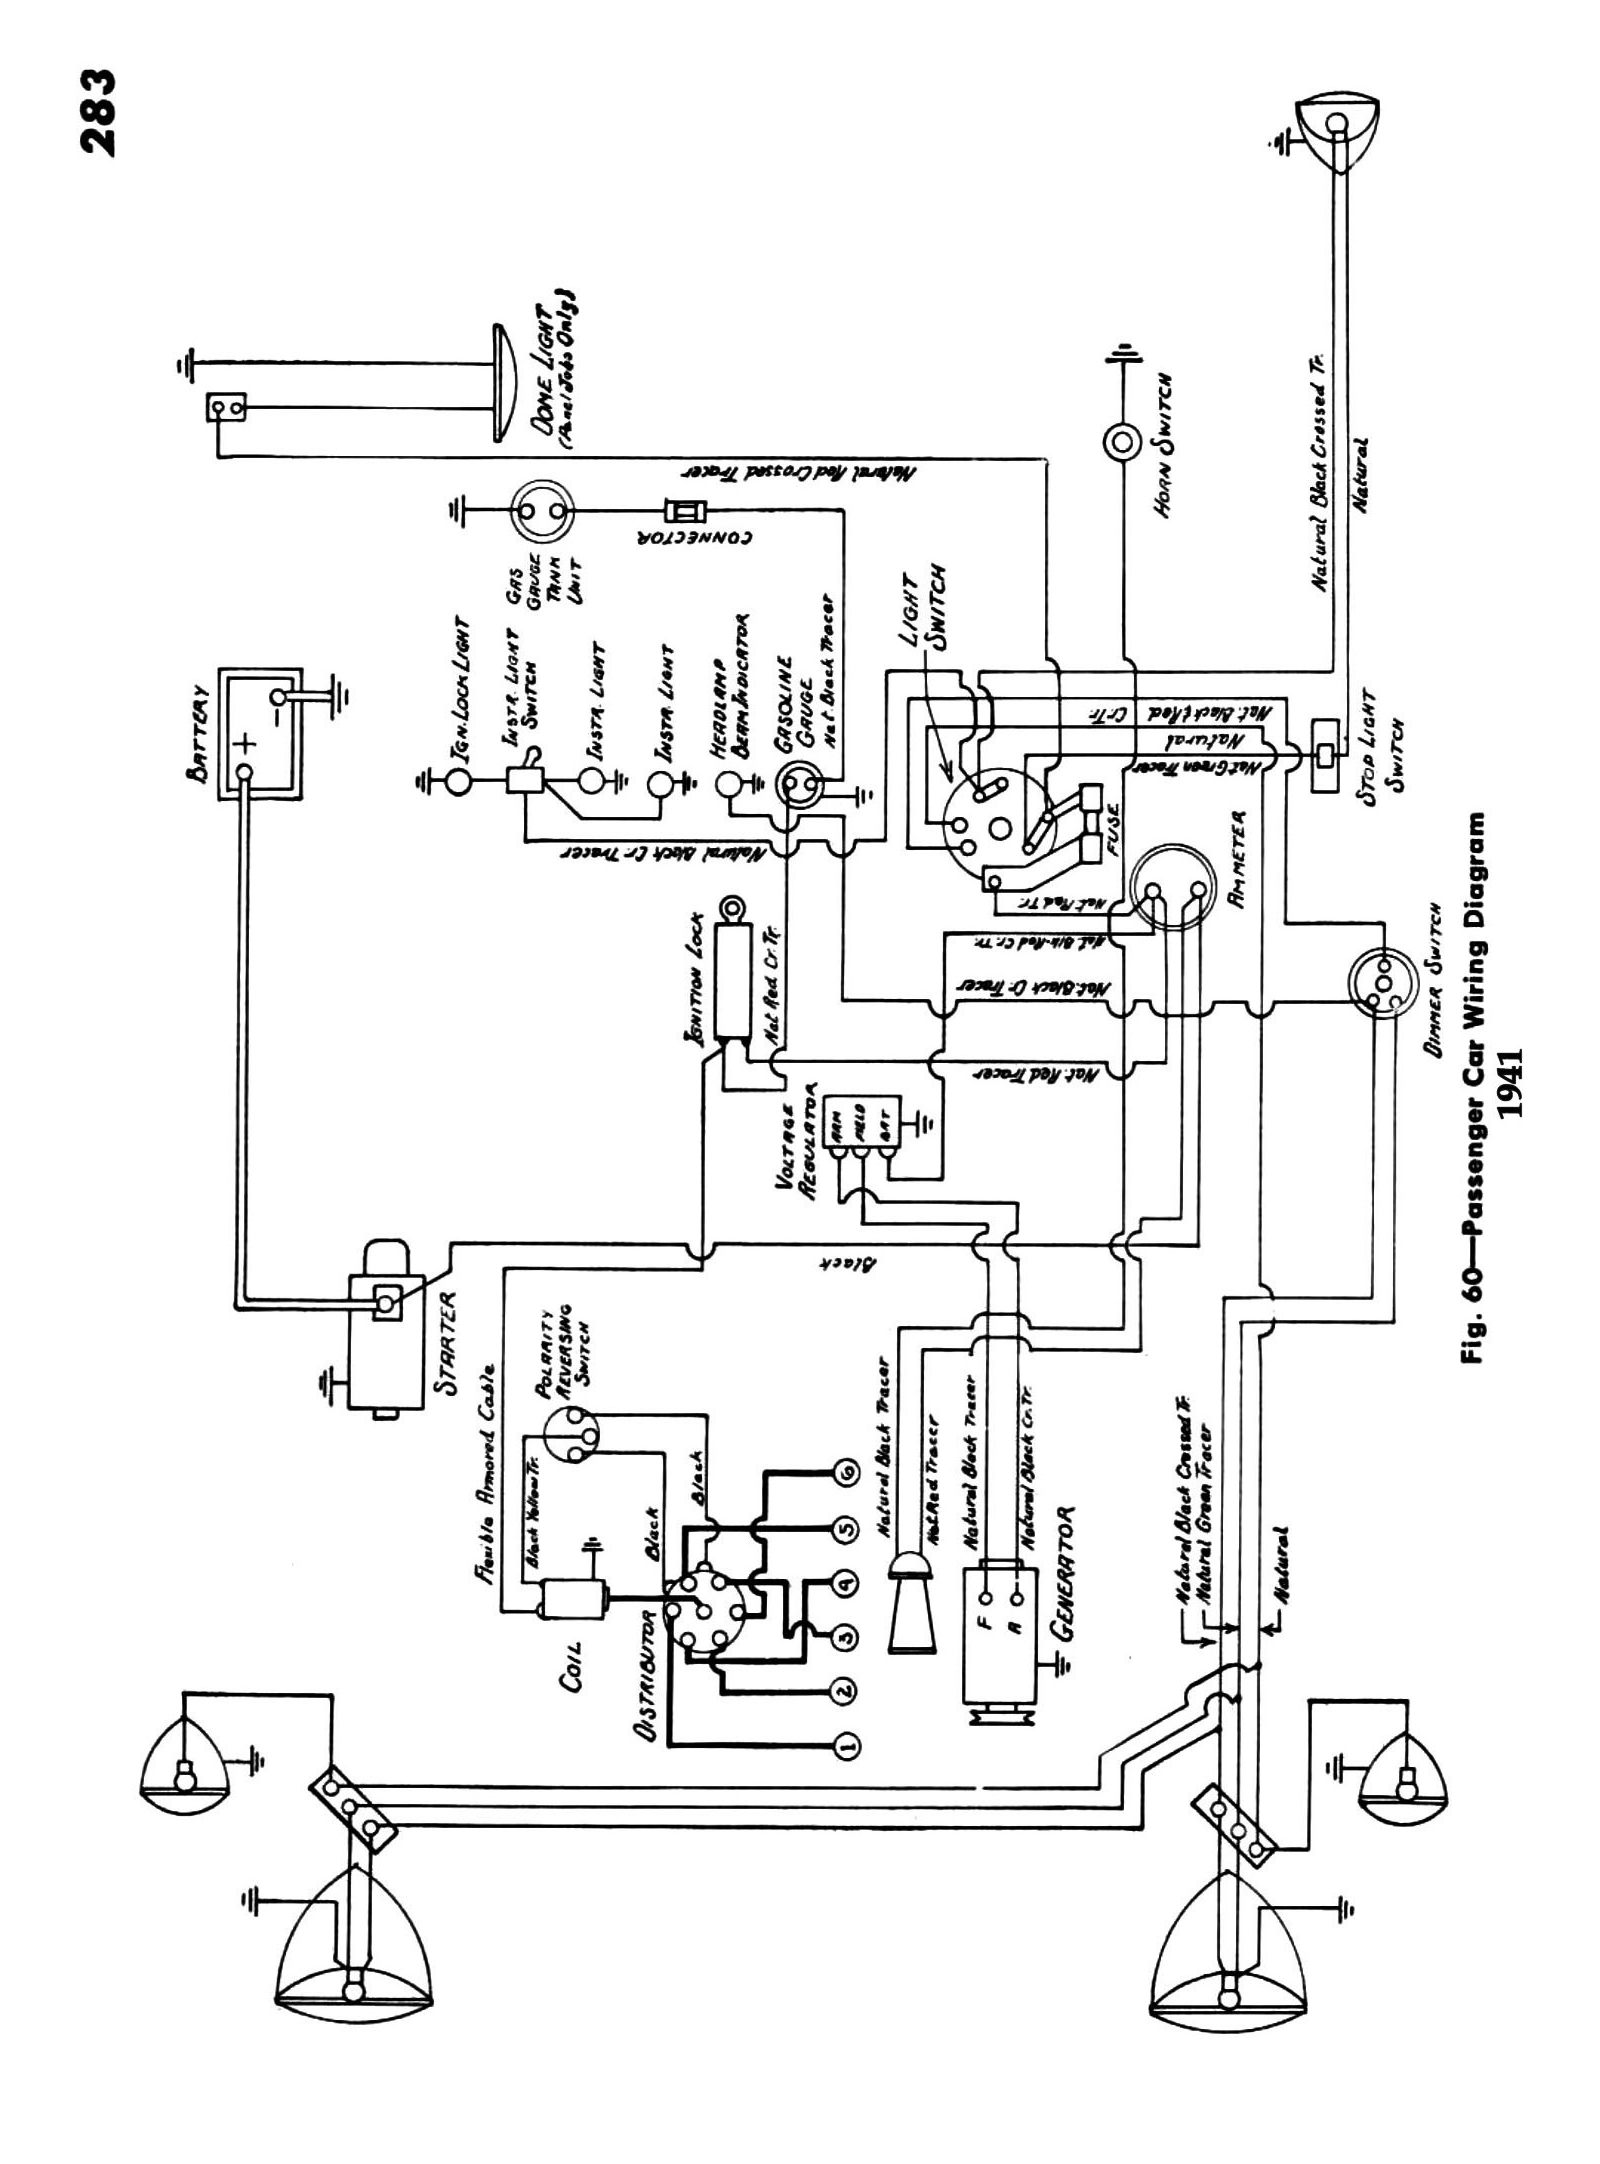 41csm283 chevy wiring diagrams 58 corvette wiring diagram at soozxer.org